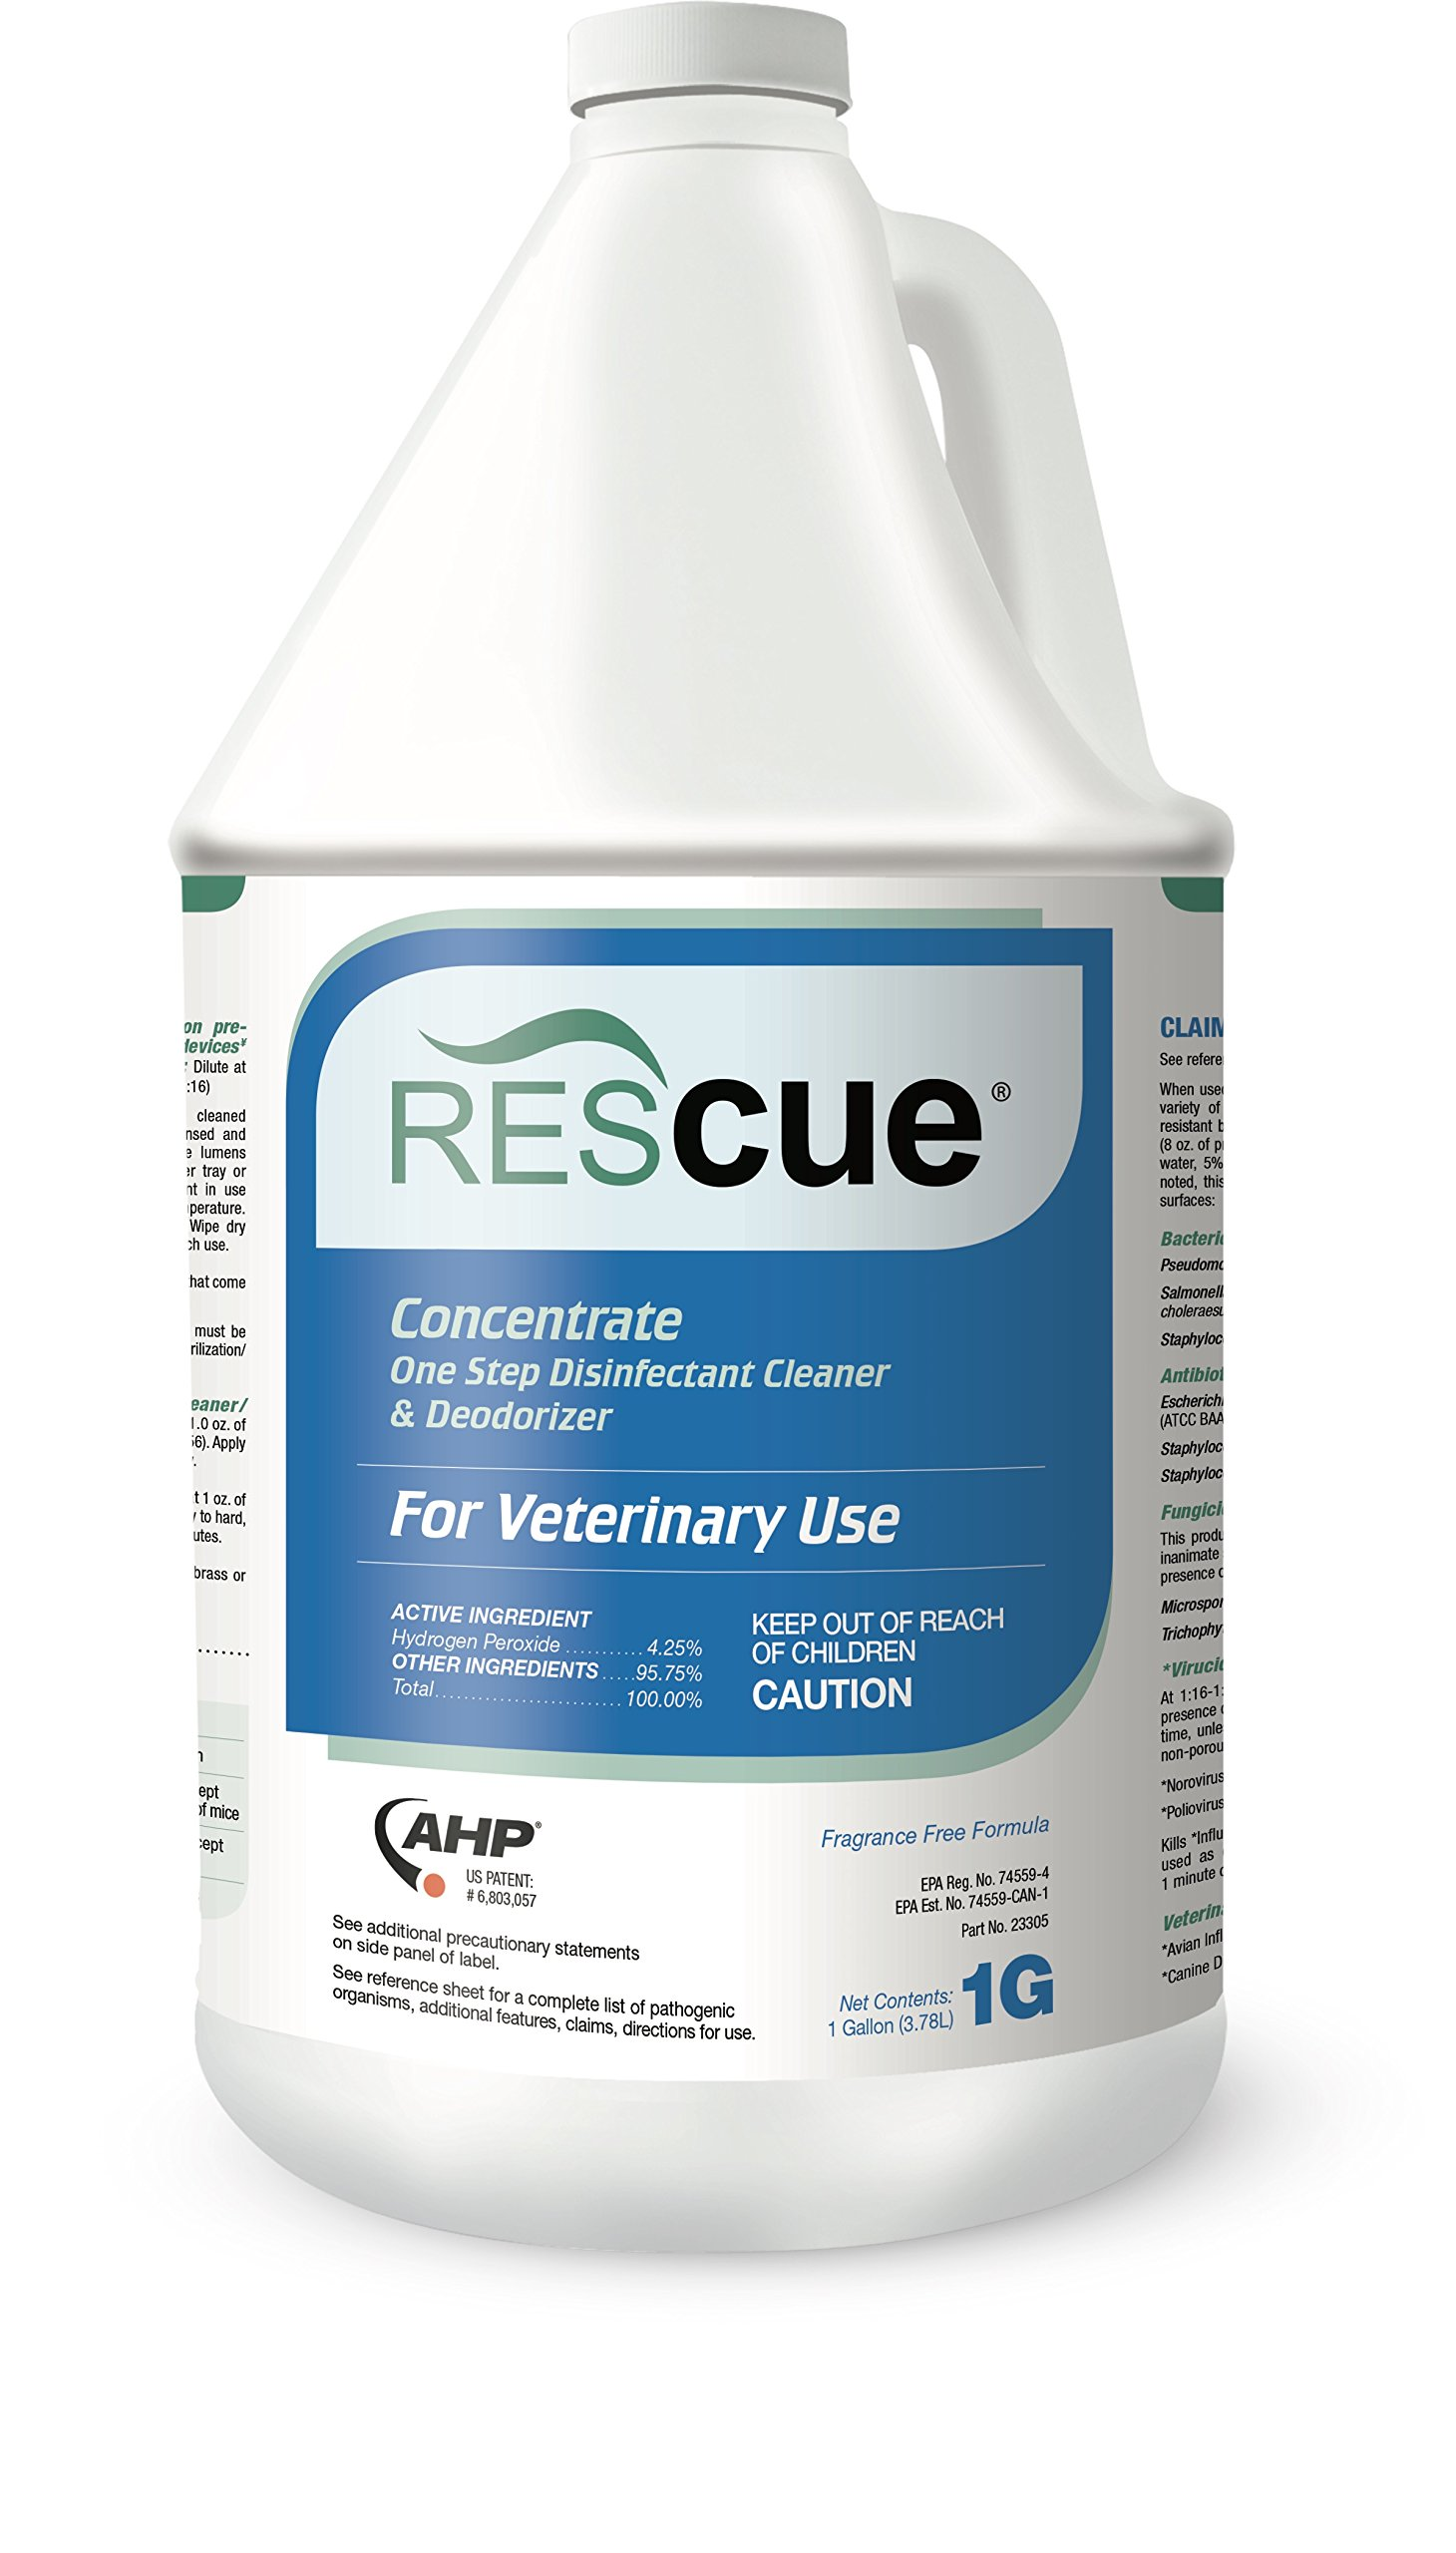 Rescue One-Step Disinfectant Cleaner & Deodorizer, Concentrate Bottle (1 Gallon) by Diversey